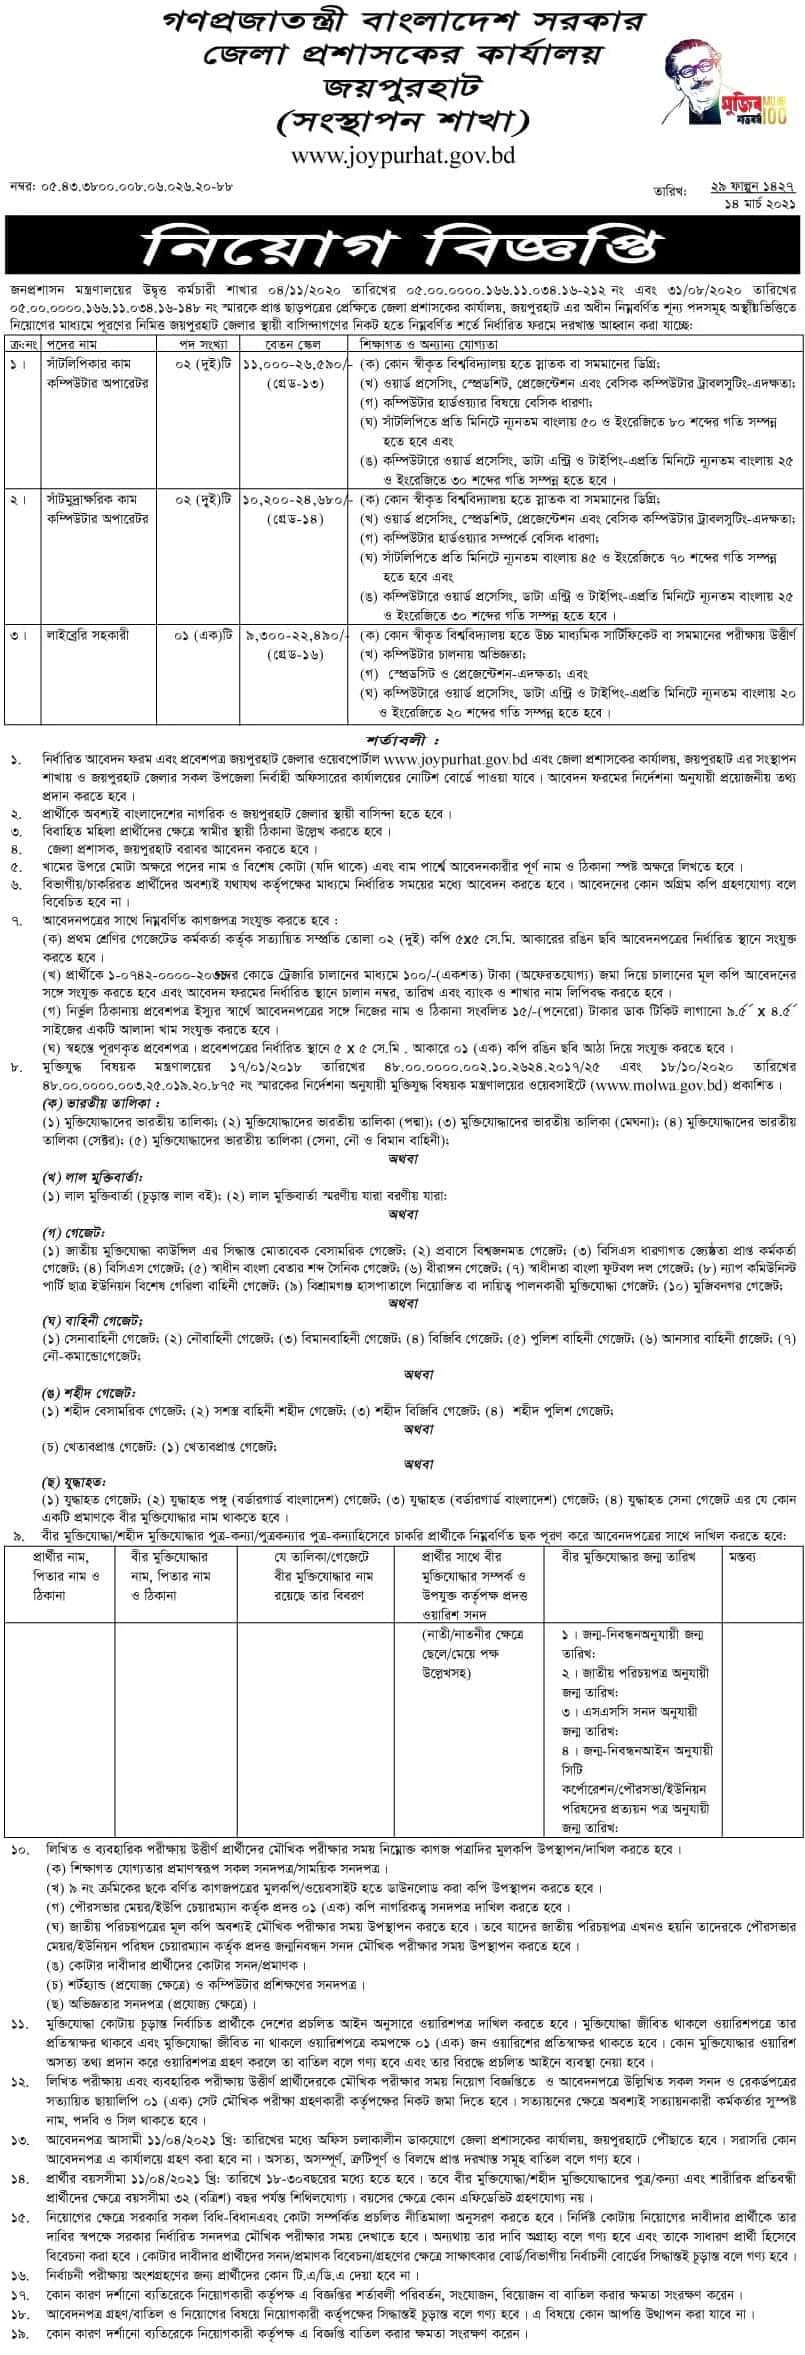 Jaipurhat DC Office Job Circular